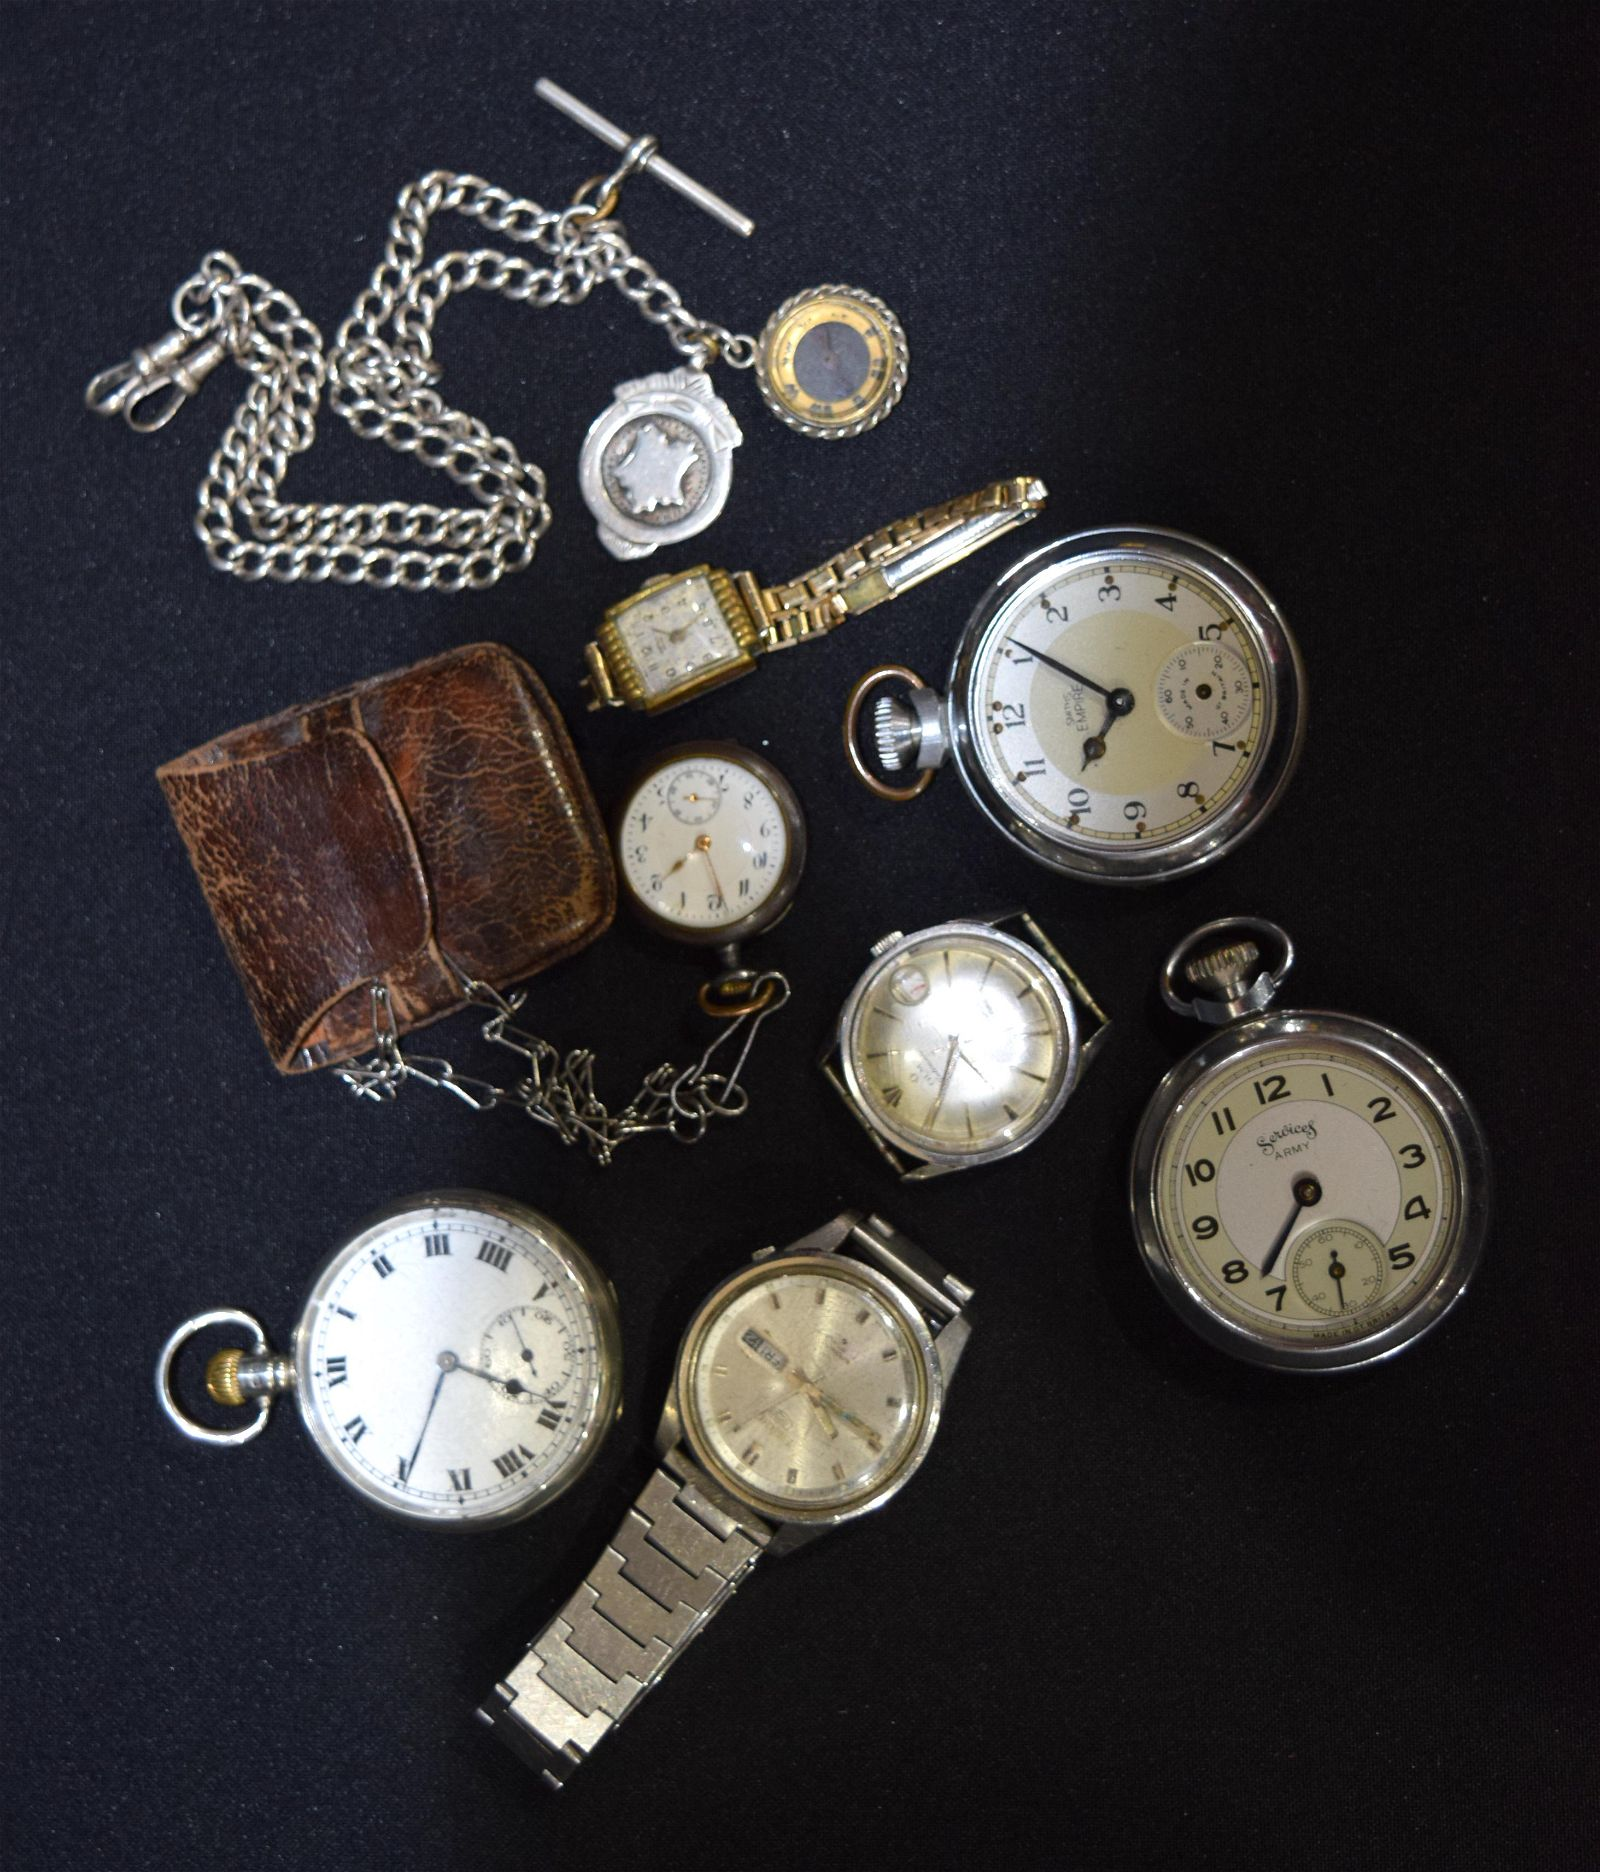 A collection of pocket watches , watches and a silver